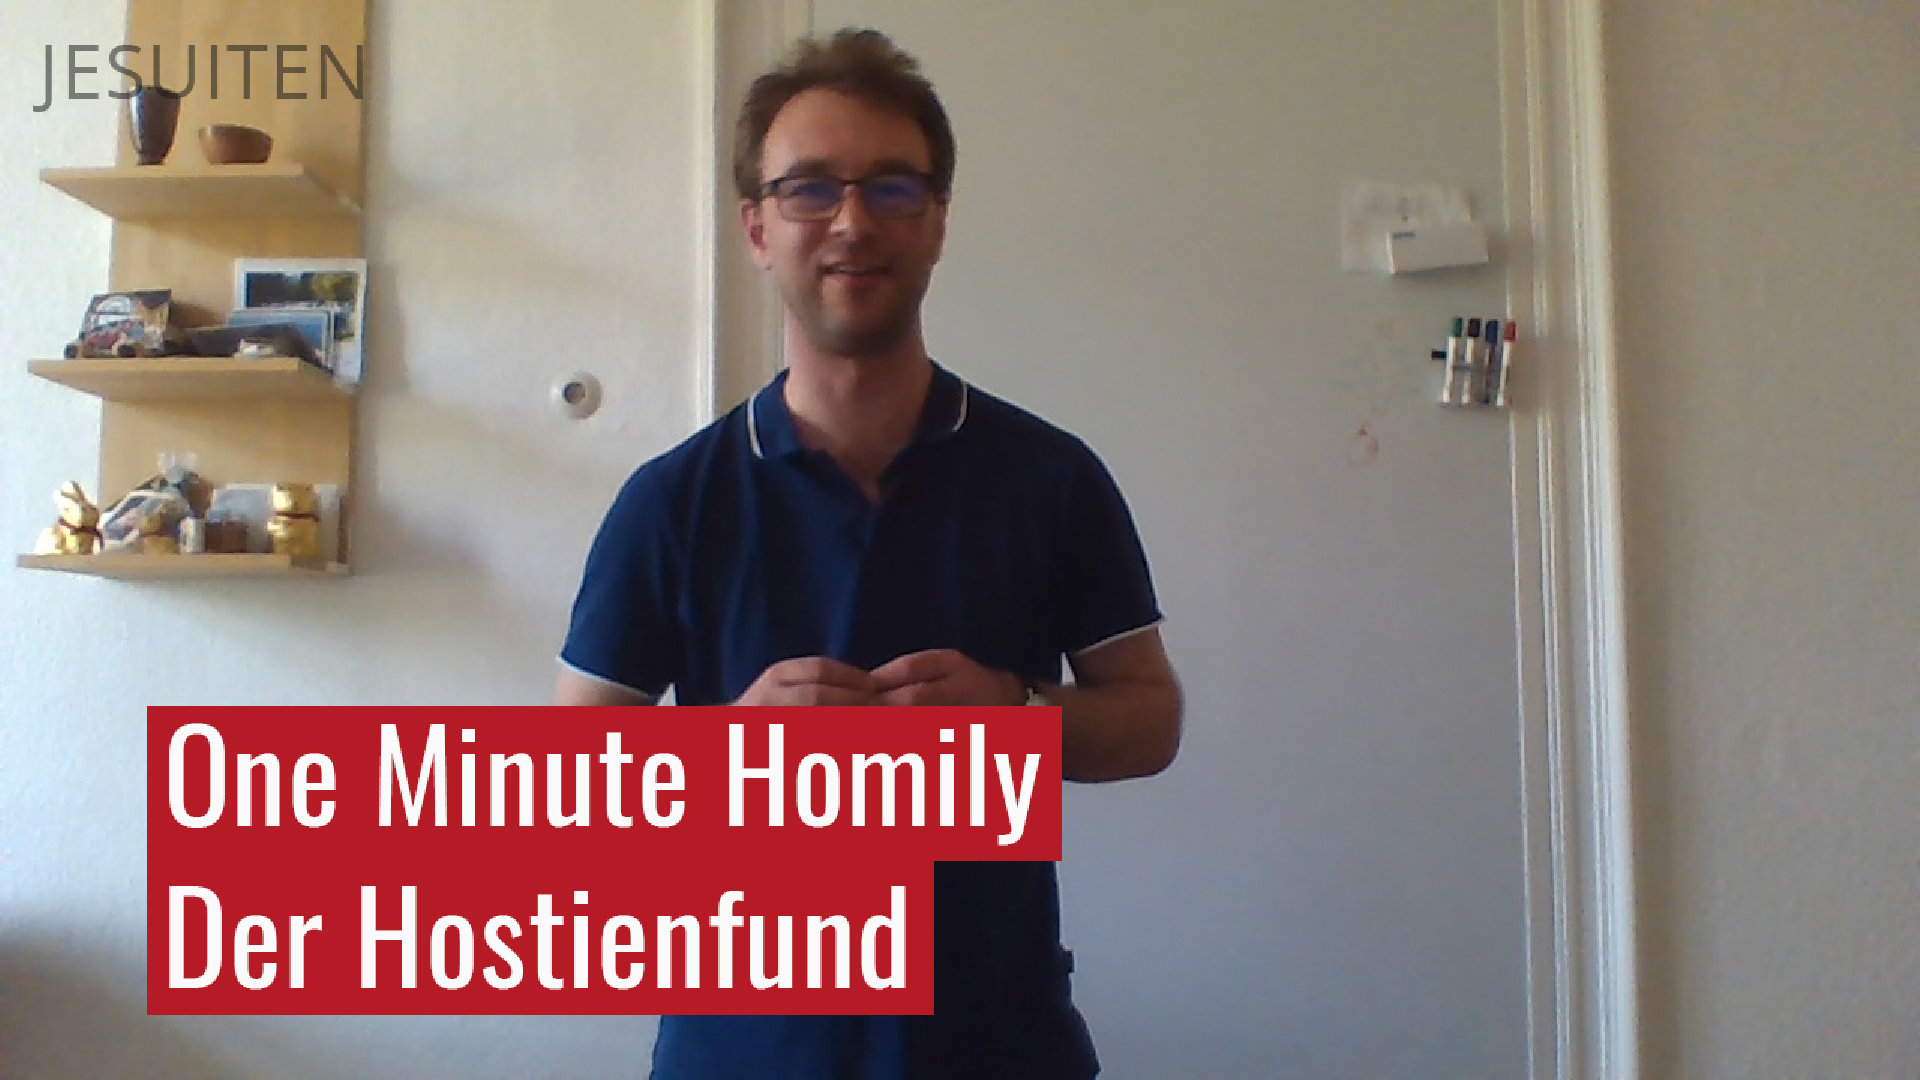 One Minute Homily: Messdiener und Argumente